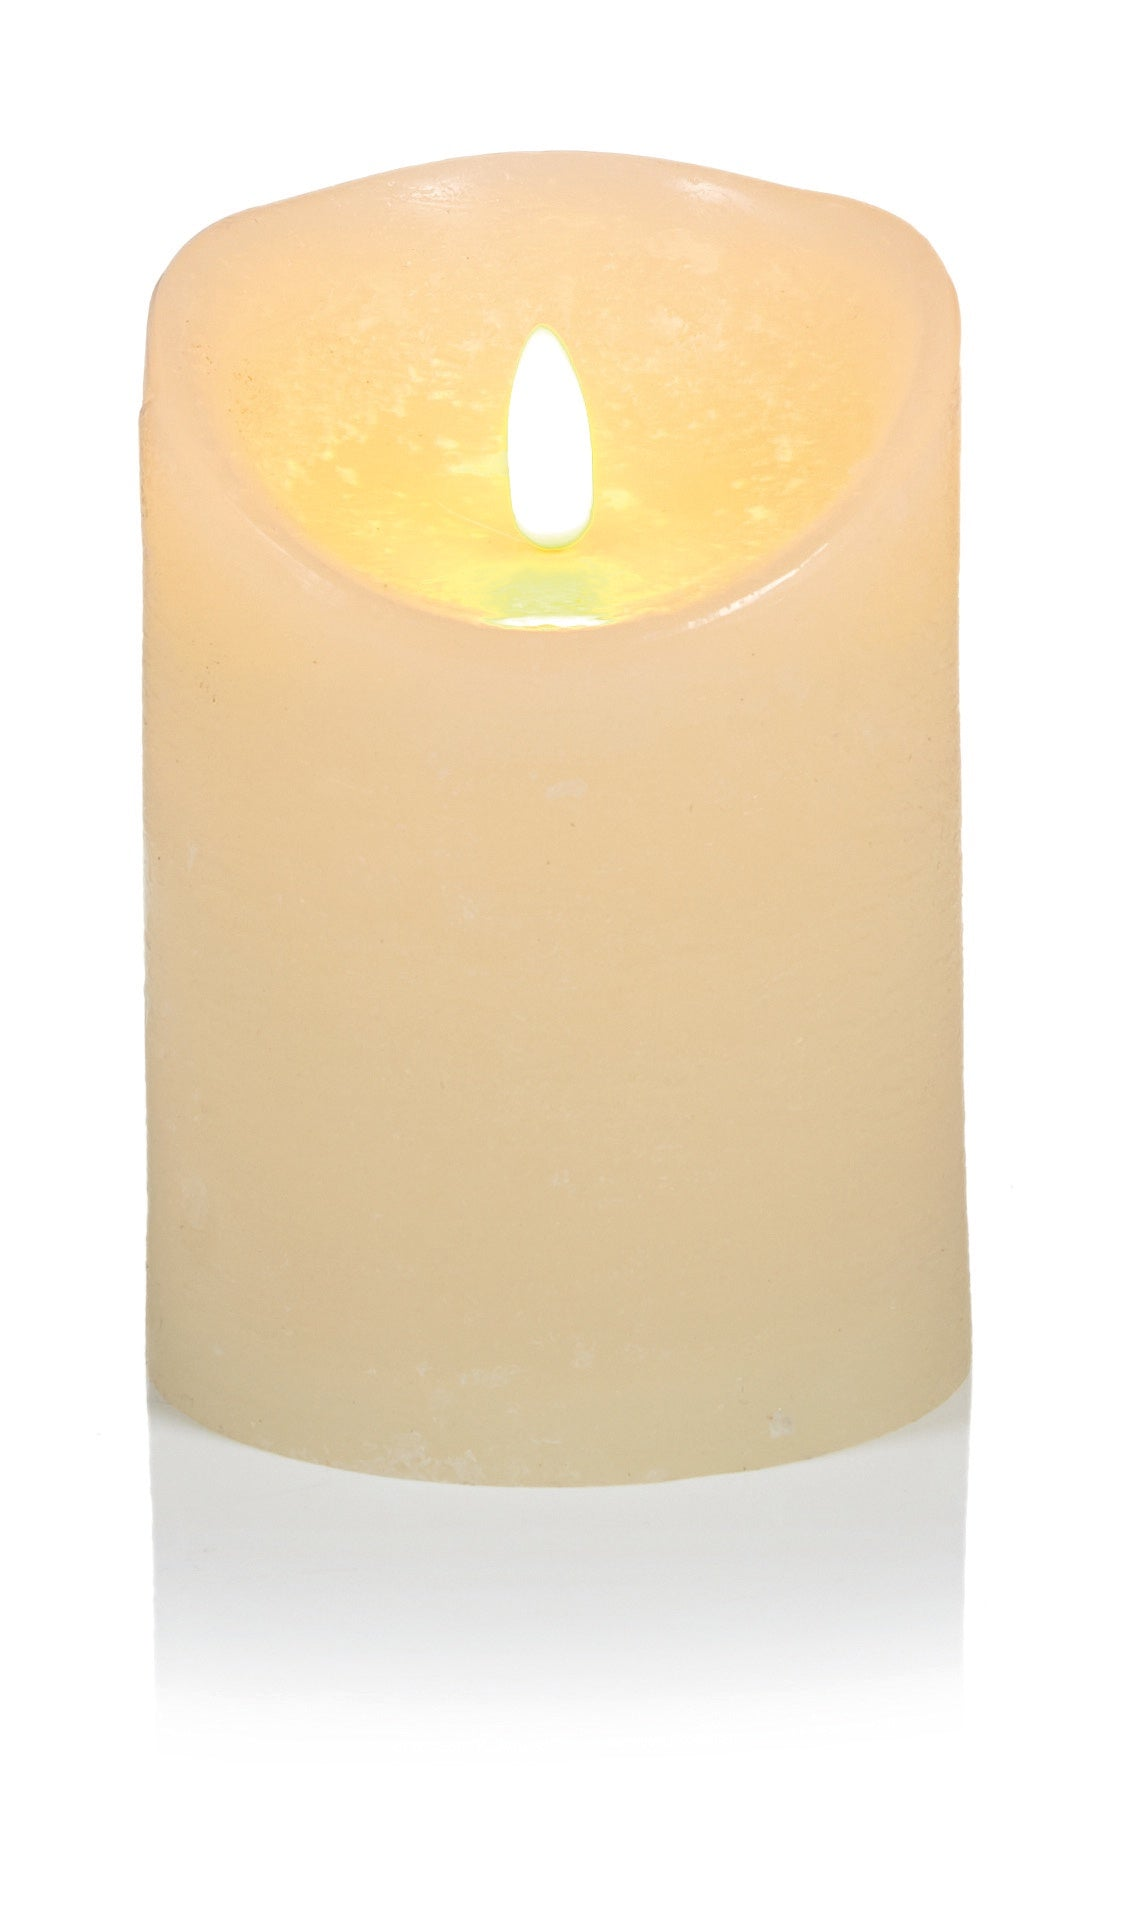 13x9cm Cream Flickerbright Textured Candle